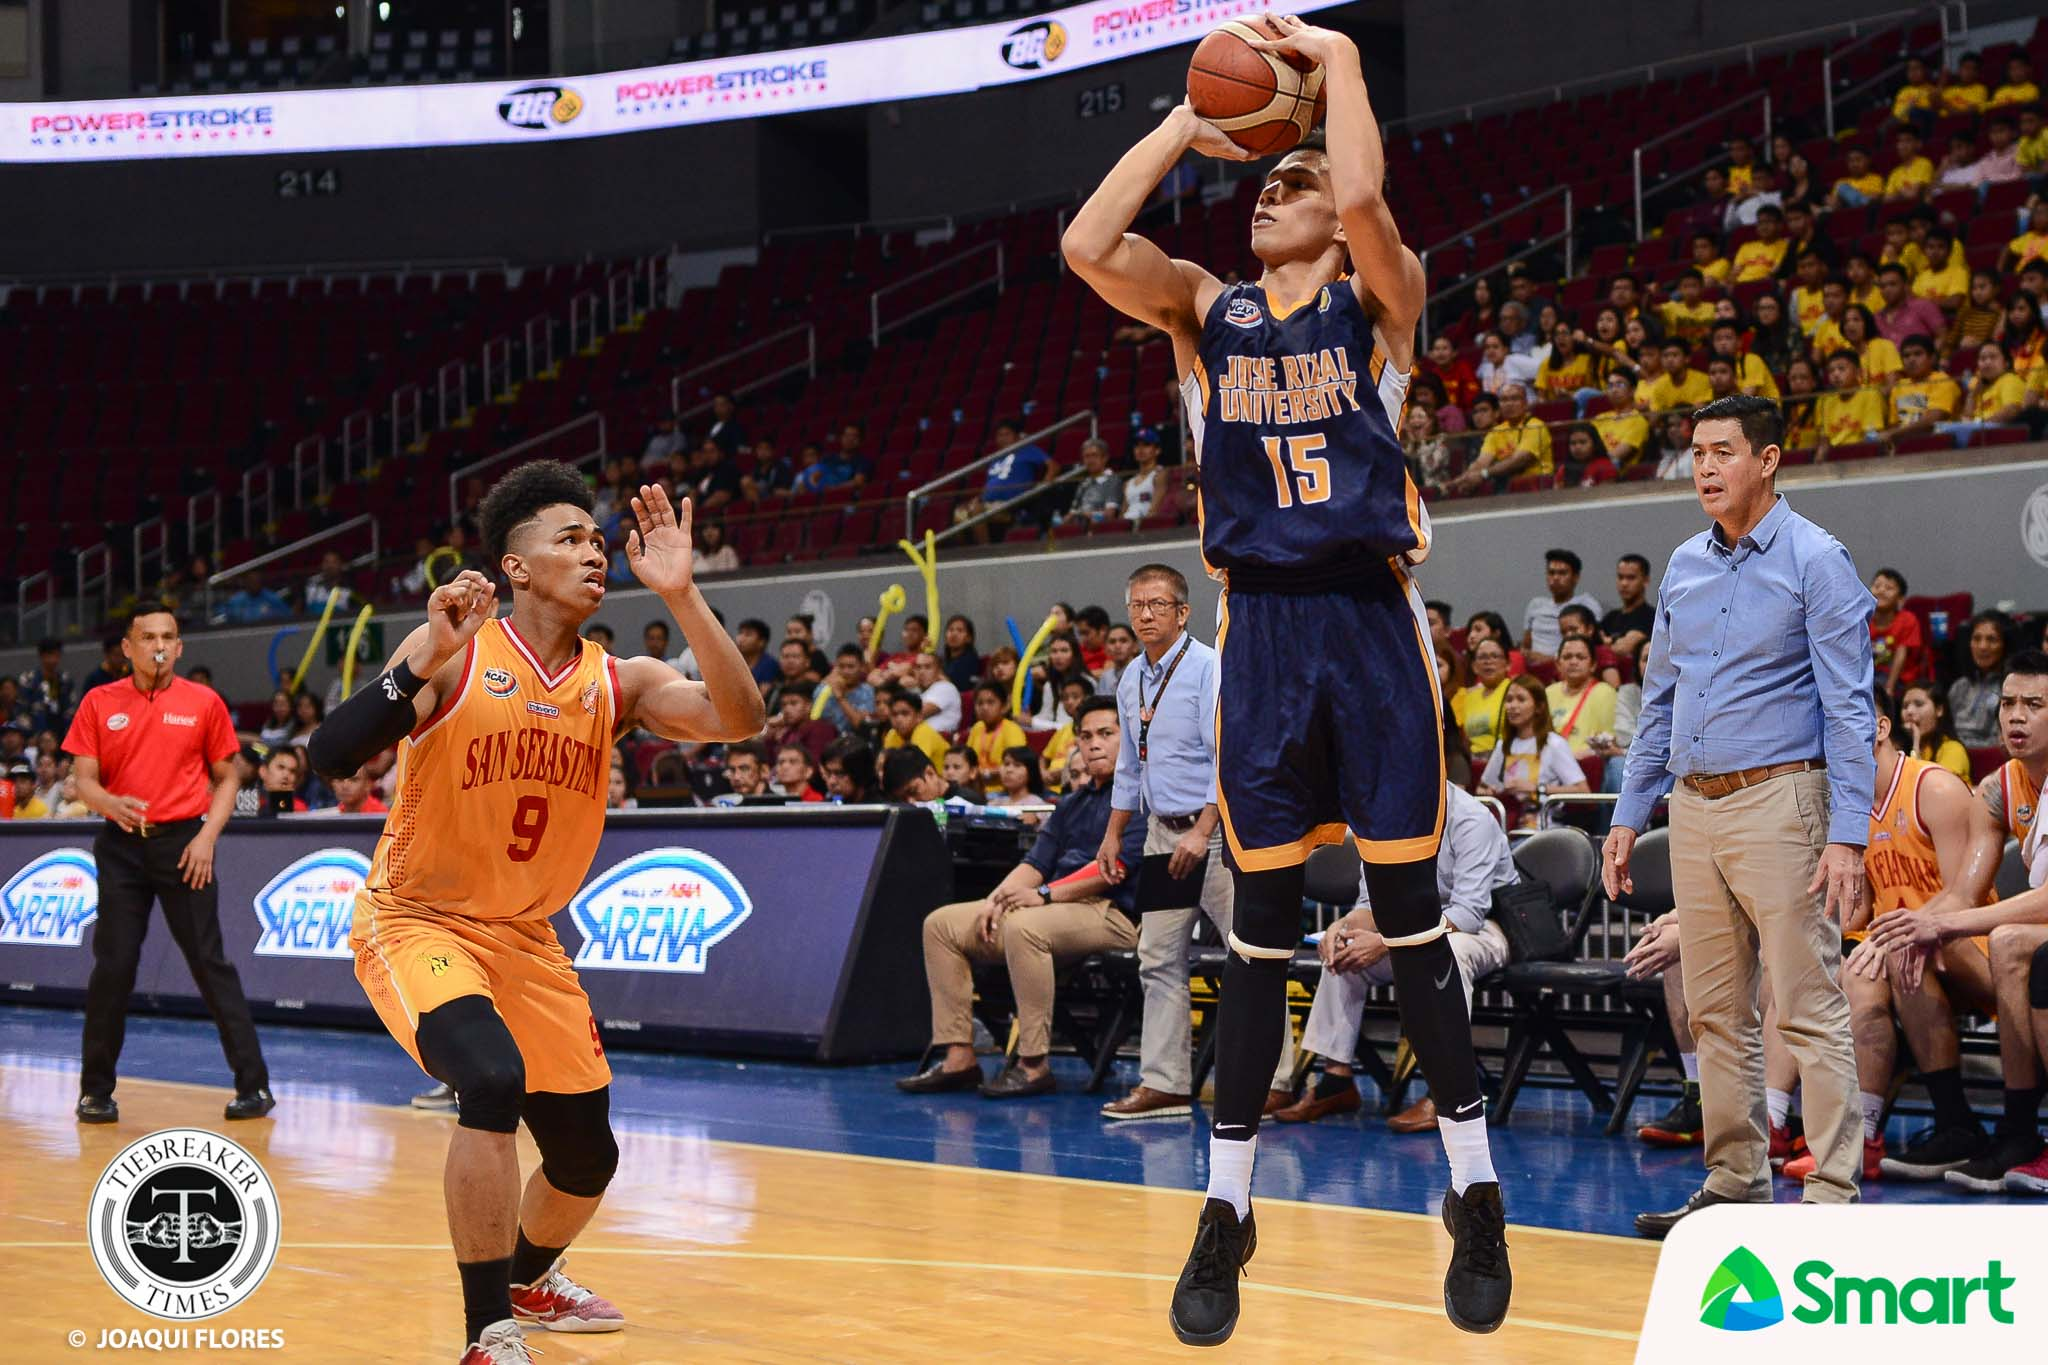 Philippine Sports News - Tiebreaker Times Emotional Ervin Grospe hoped to have one more game with JRU after PBA Draft Basketball JRU NCAA News PBA  PBA Season 43 NCAA Season 93 Seniors Basketball NCAA Season 93 JRU Seniors Basketball Ervin Grospe 2017 PBA Draft